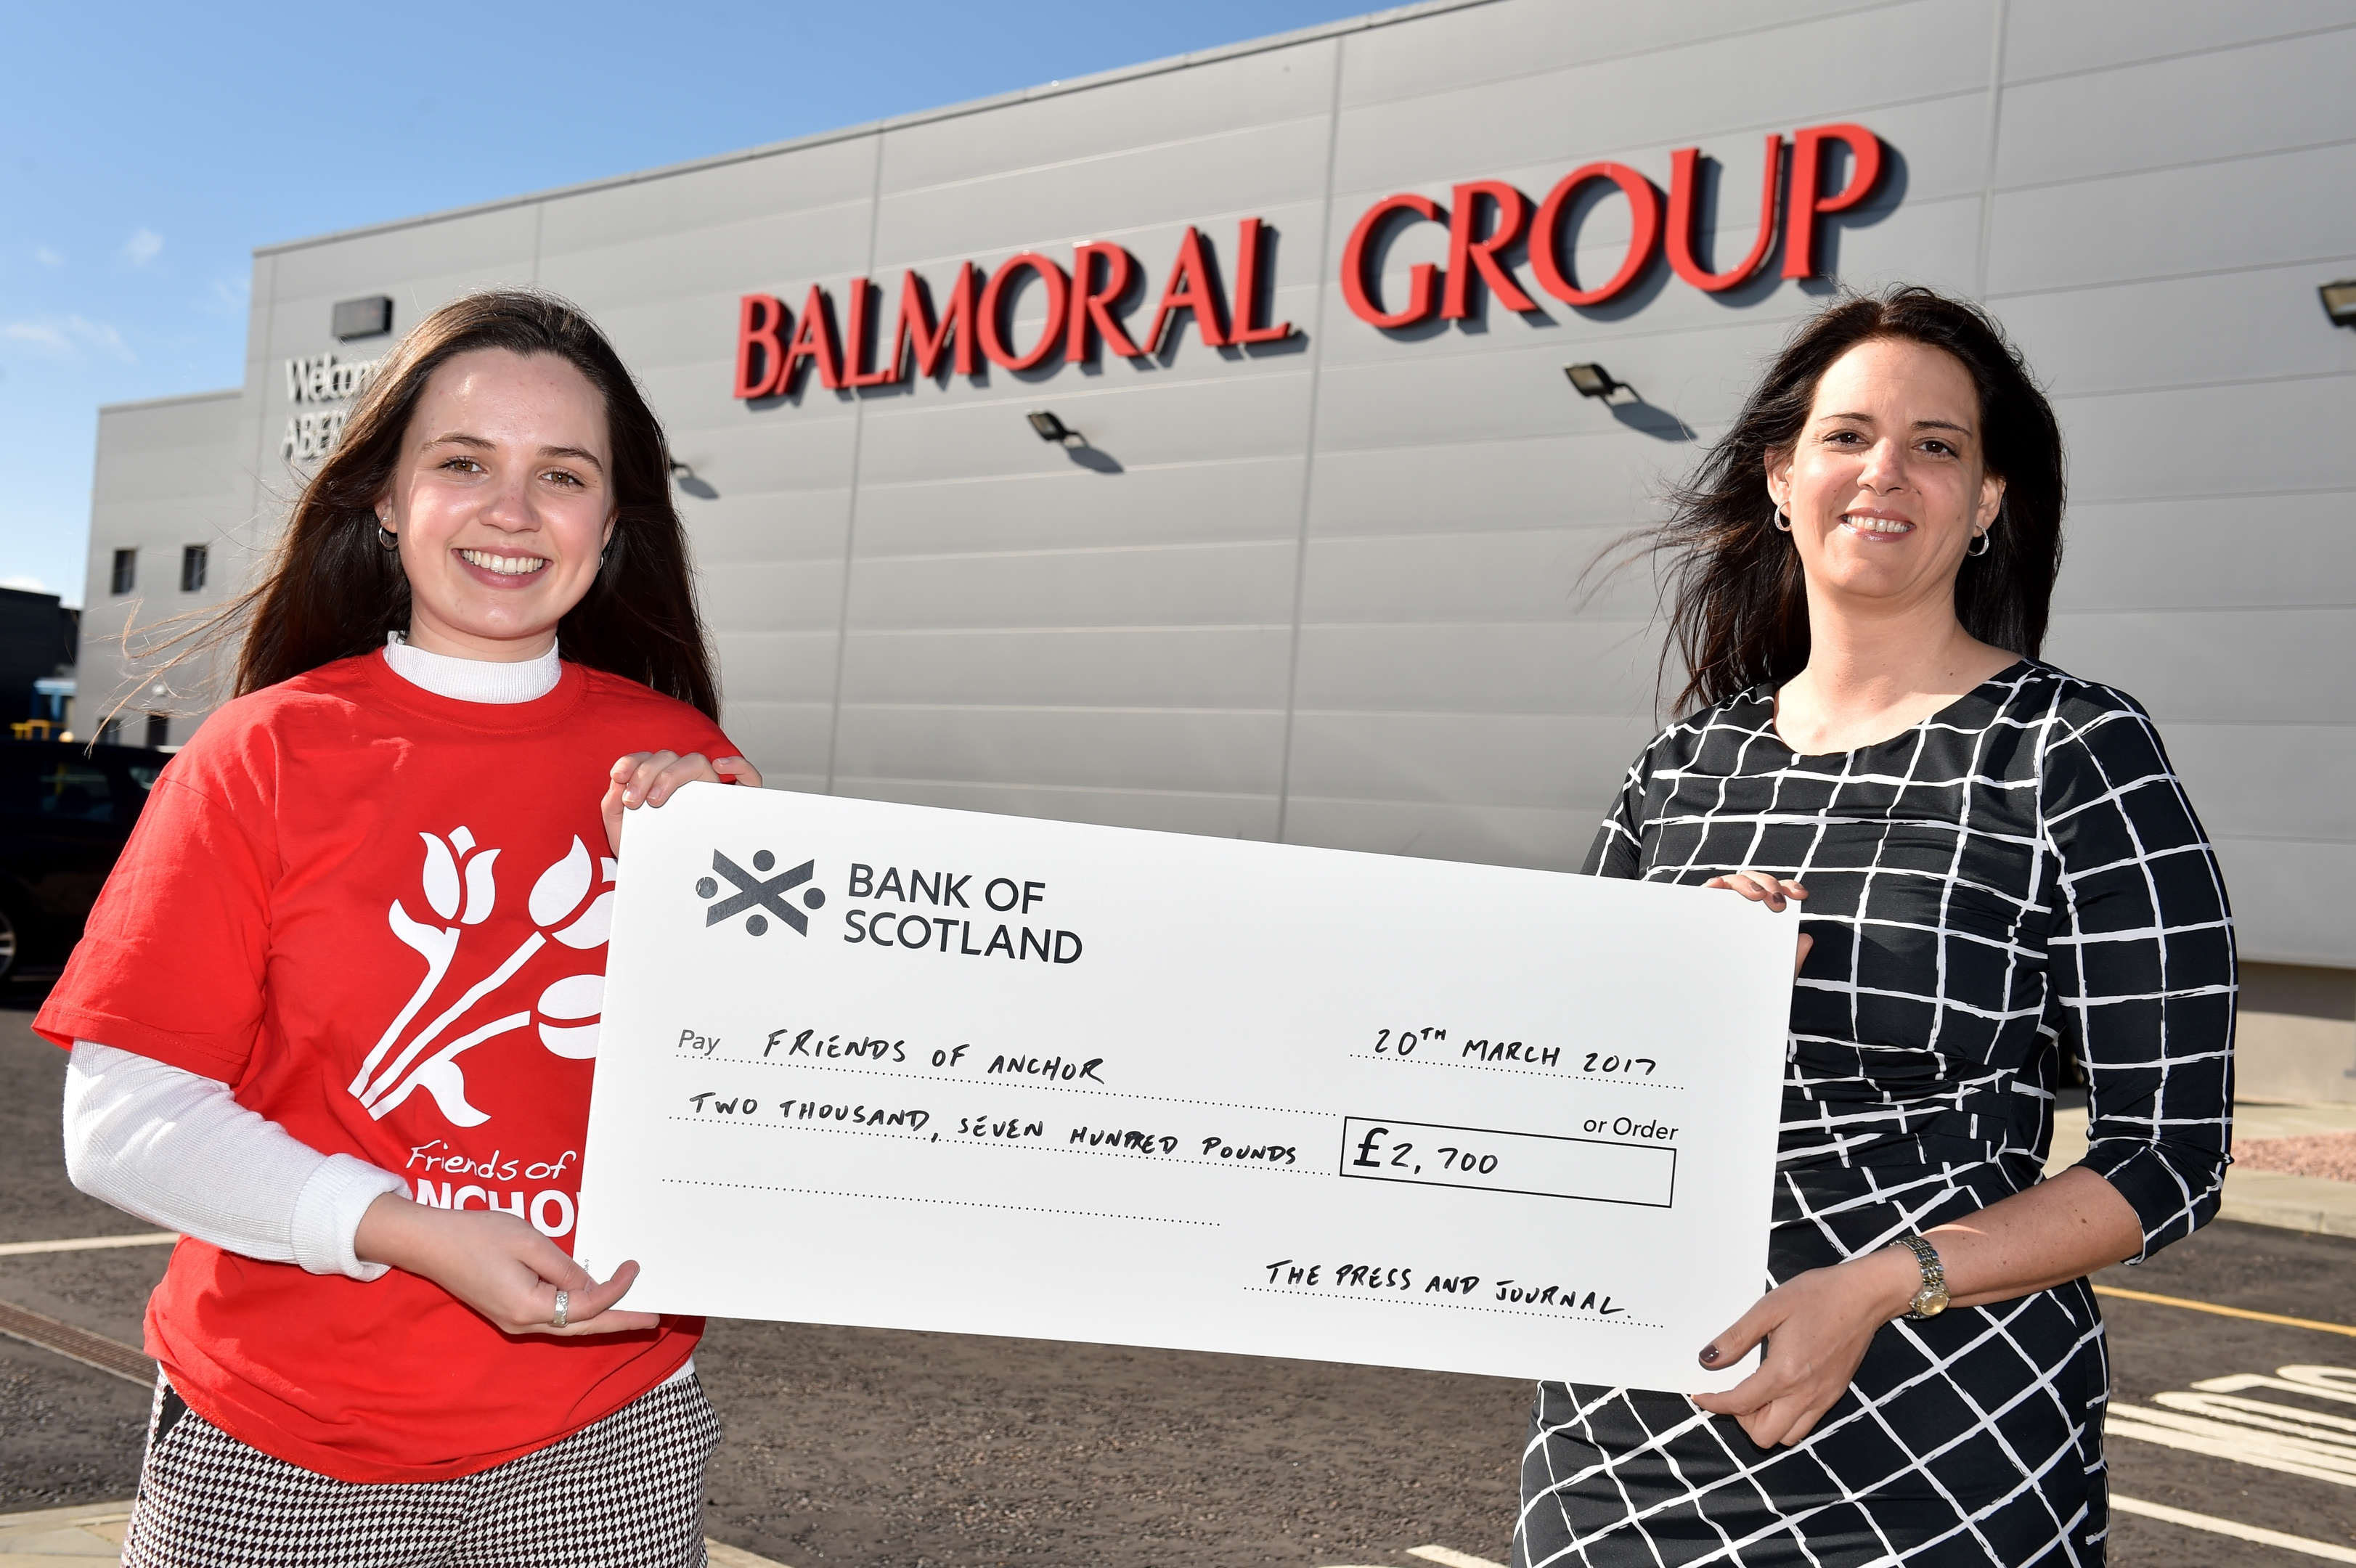 Cheque presentation of £2700 that was raised at last year's inaugural Energy Cup Gala Dinner auction, at Trump International.  Stacy Edghill, Events Sales Manager handing over the cheque to Ursula Fairlie, PR & Fundraising Executive, Friends of ANCHOR,